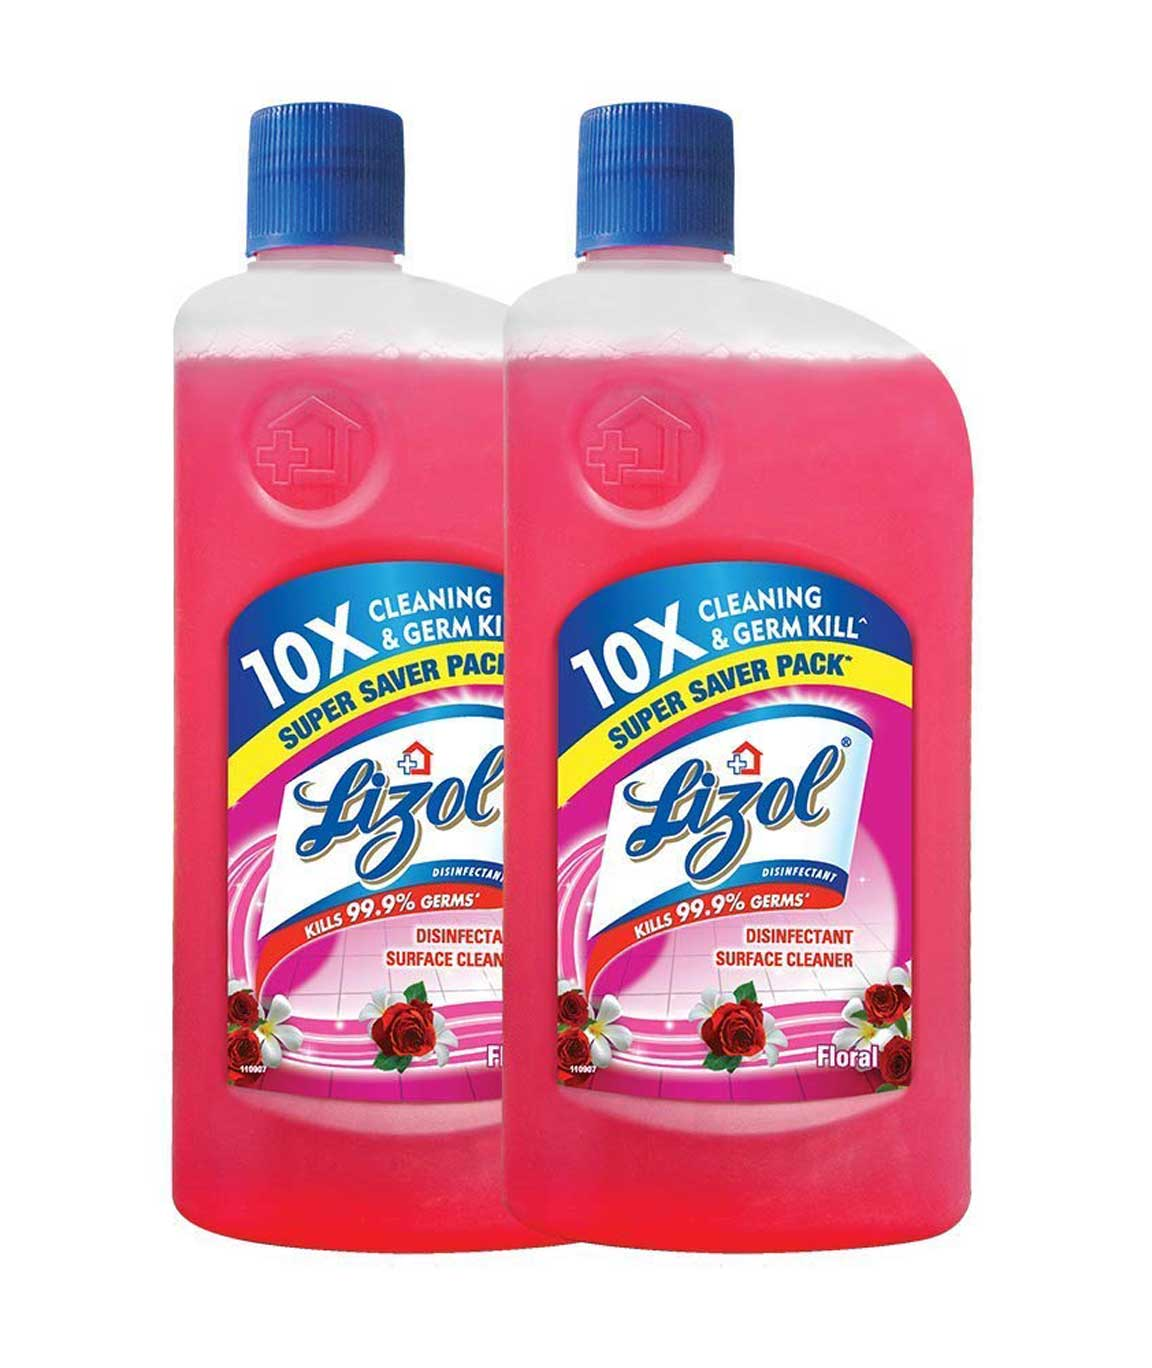 Lizol Disinfectant Surface & Floor Cleaner Floral - 975 ml (Pack of 2)